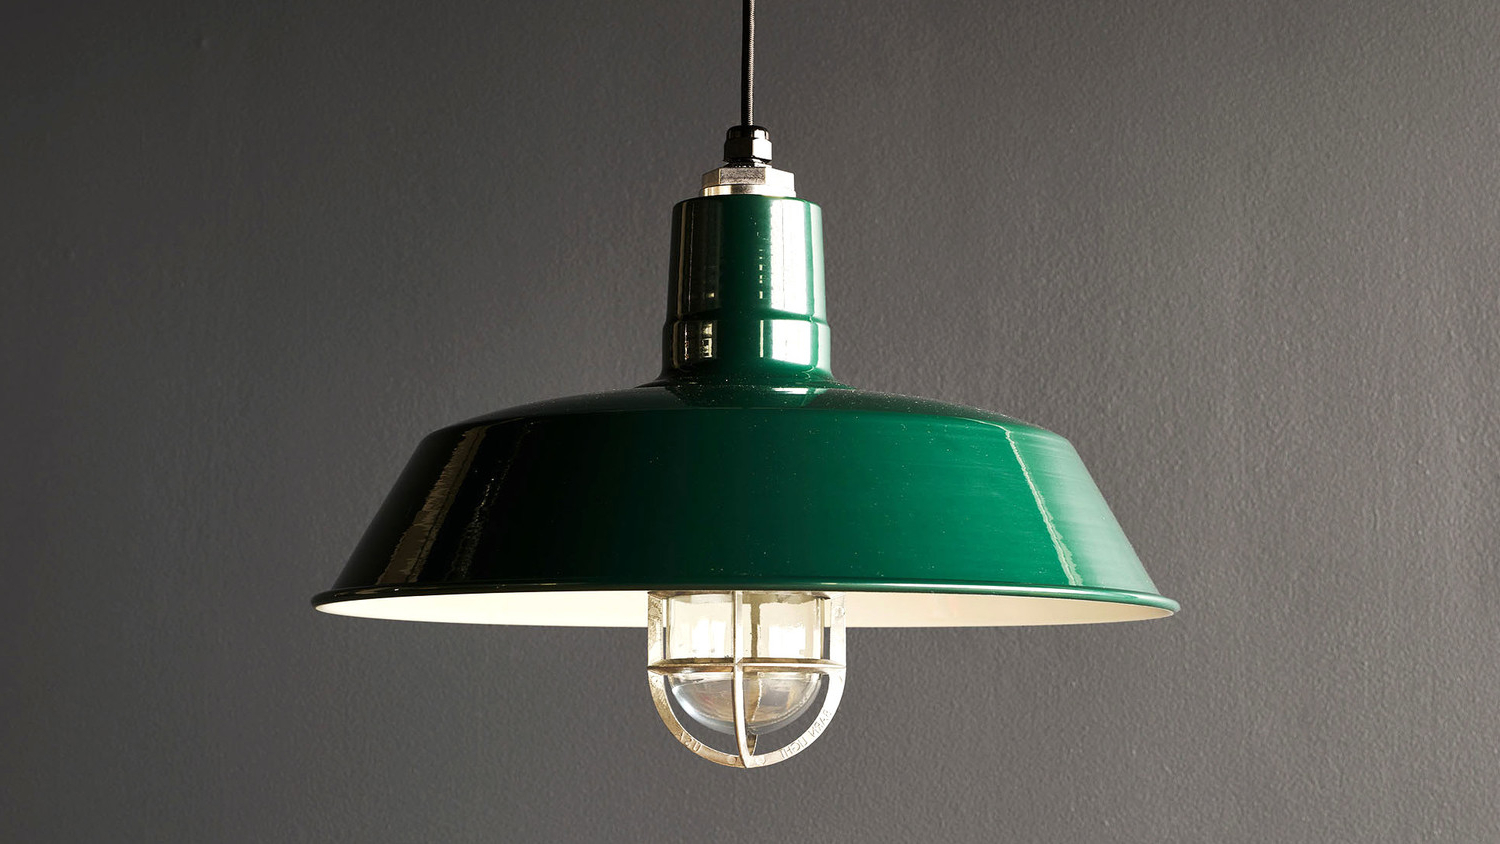 Most Recent Erico 1 Light Single Bell Pendants Throughout New Savings On Erico 1 Light Single Bell Pendant (View 12 of 20)